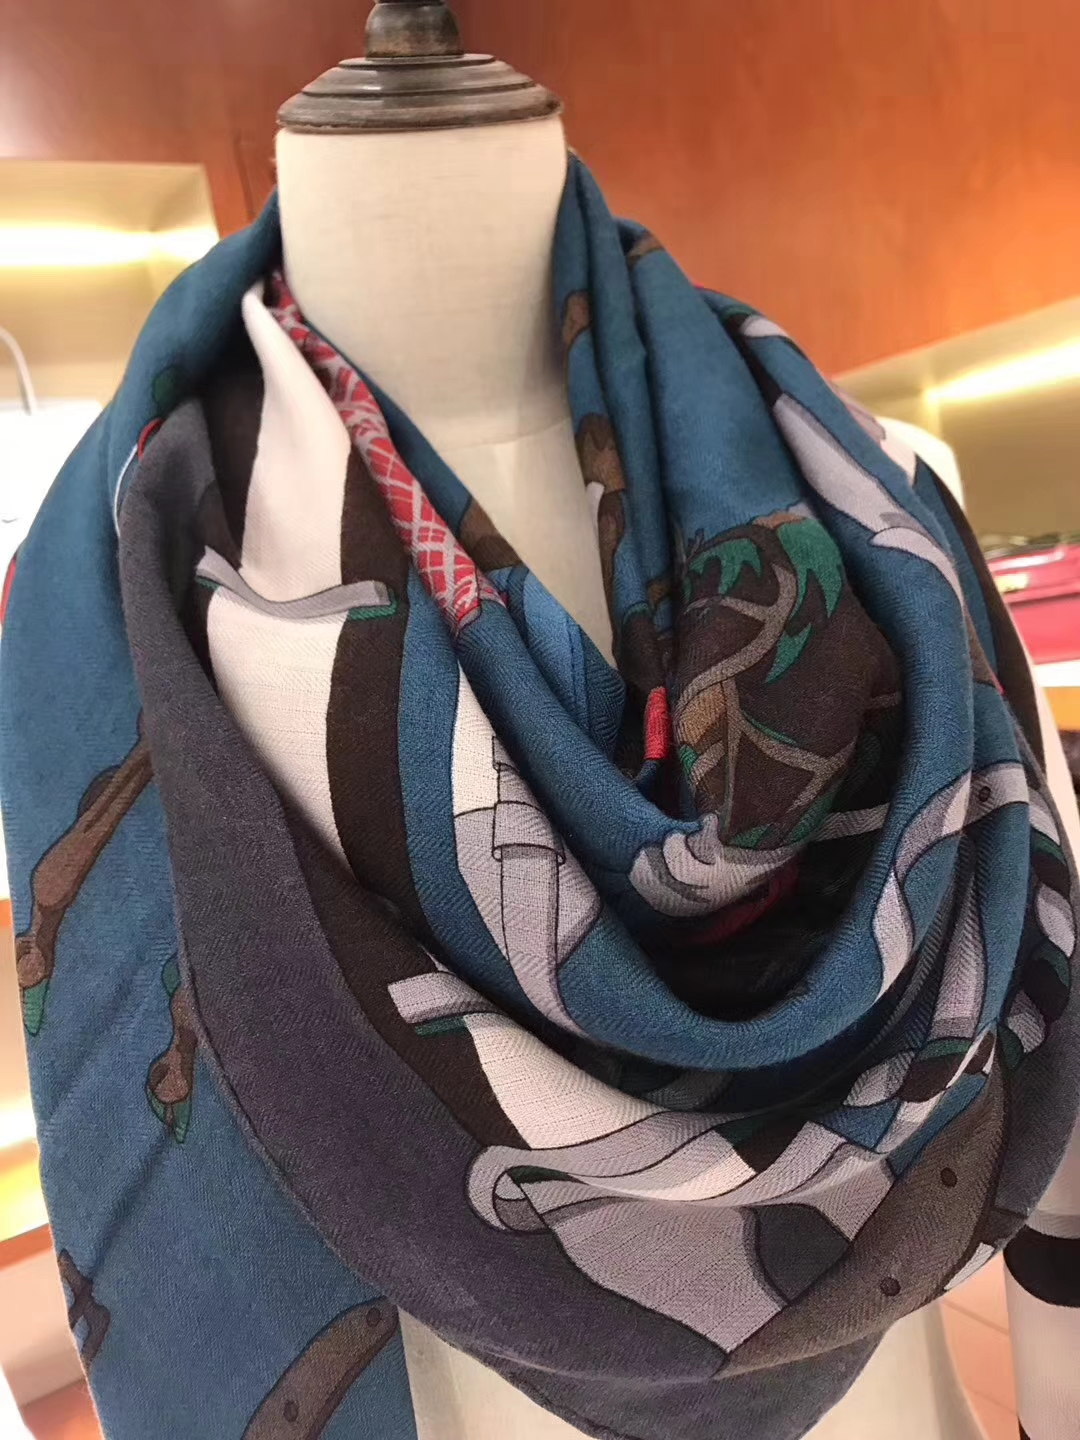 High Quality Hermes Cashmere Scarf Cape in Navy Blue 140*140cm Complete Package